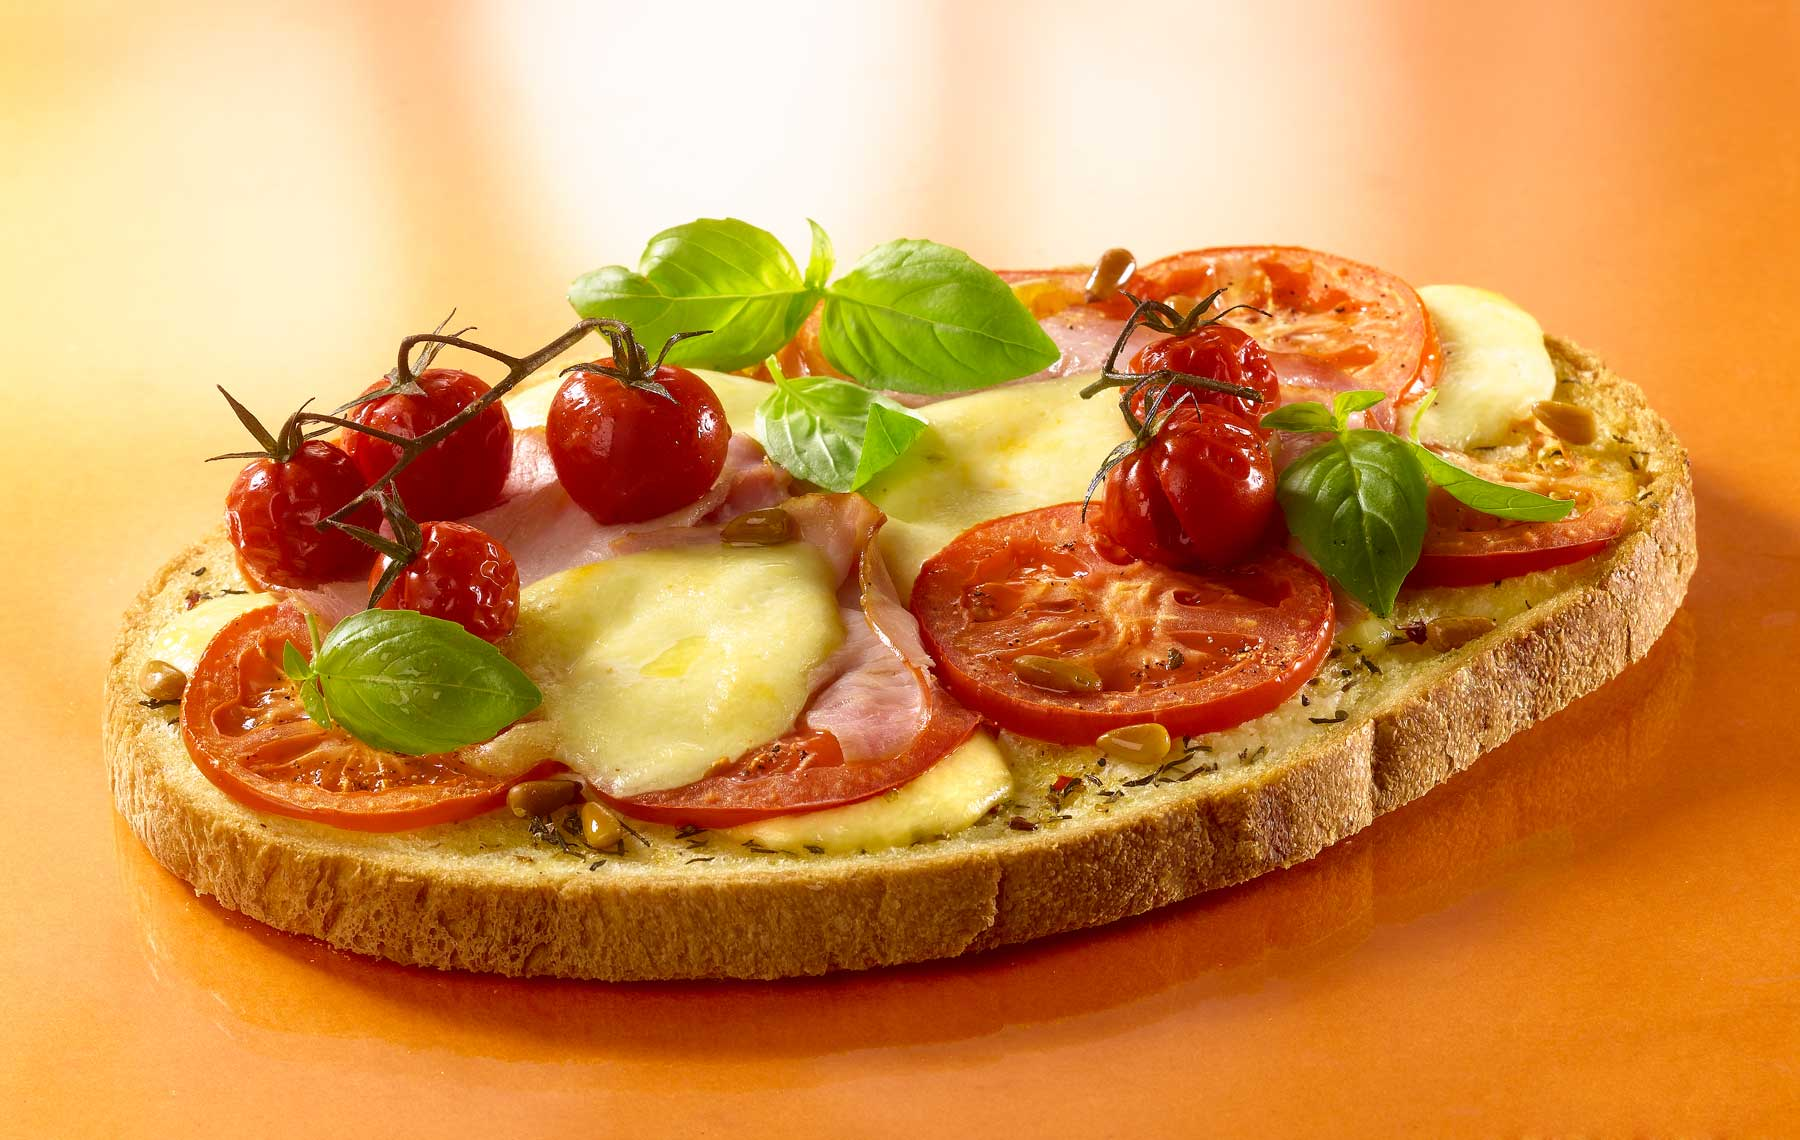 Accueil > Our recipes > Tomato and Mozzarella Bruschetta